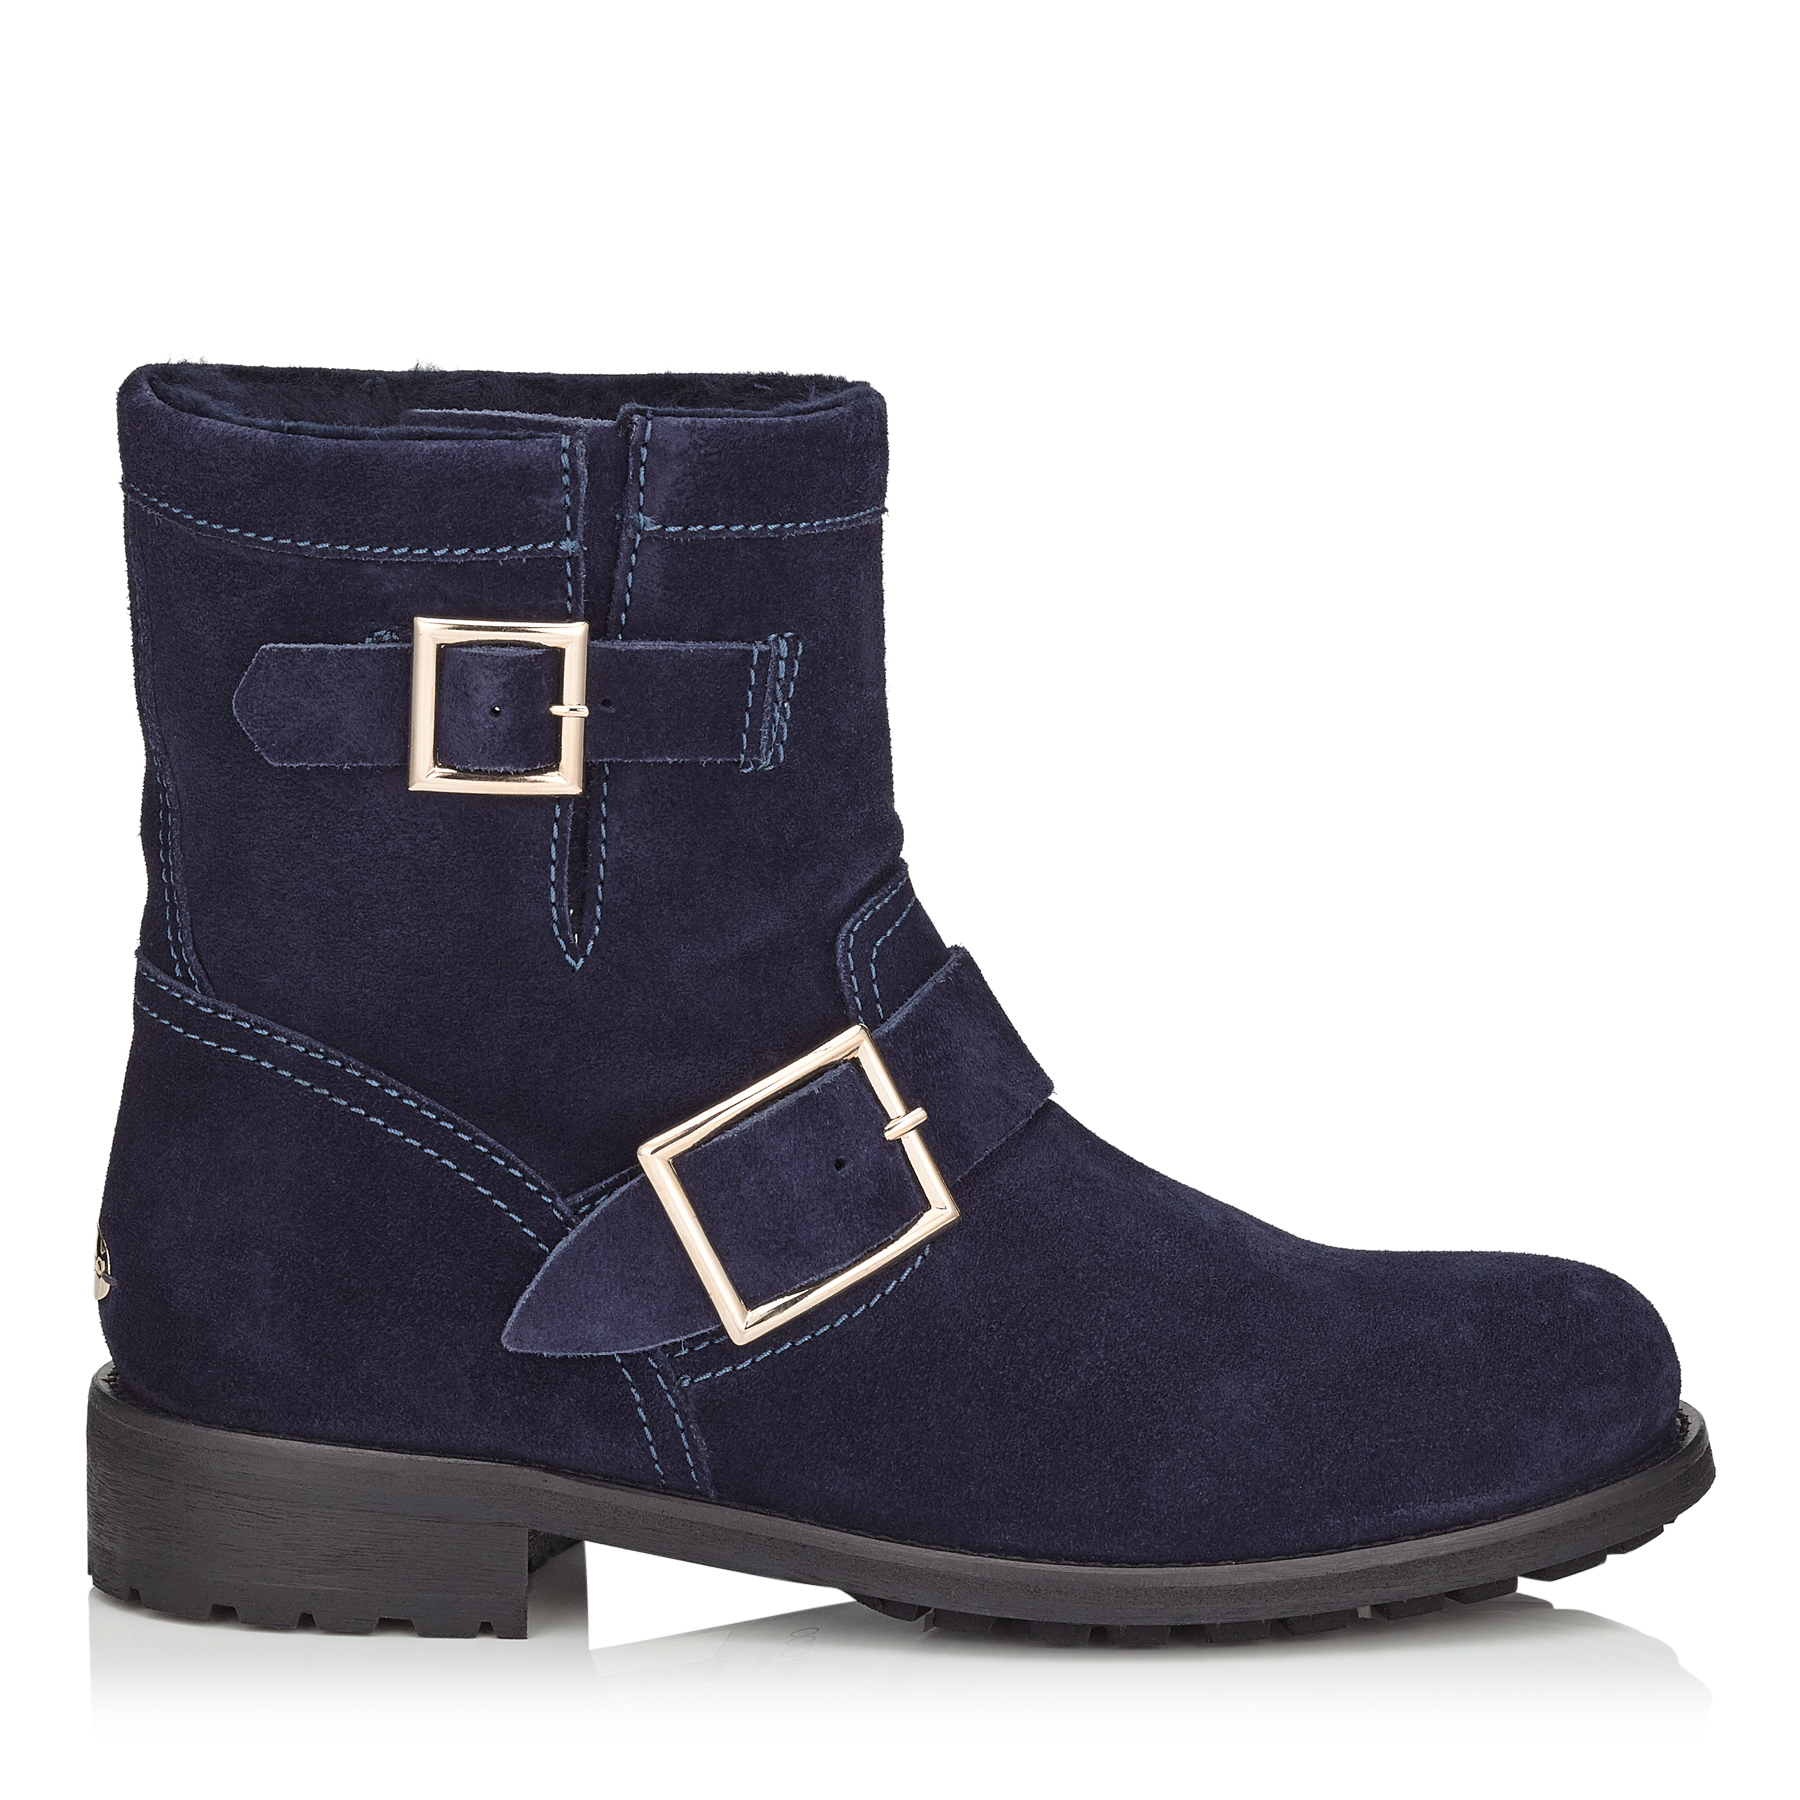 YOUTH Navy Suede Biker Boots with Shearling Lining